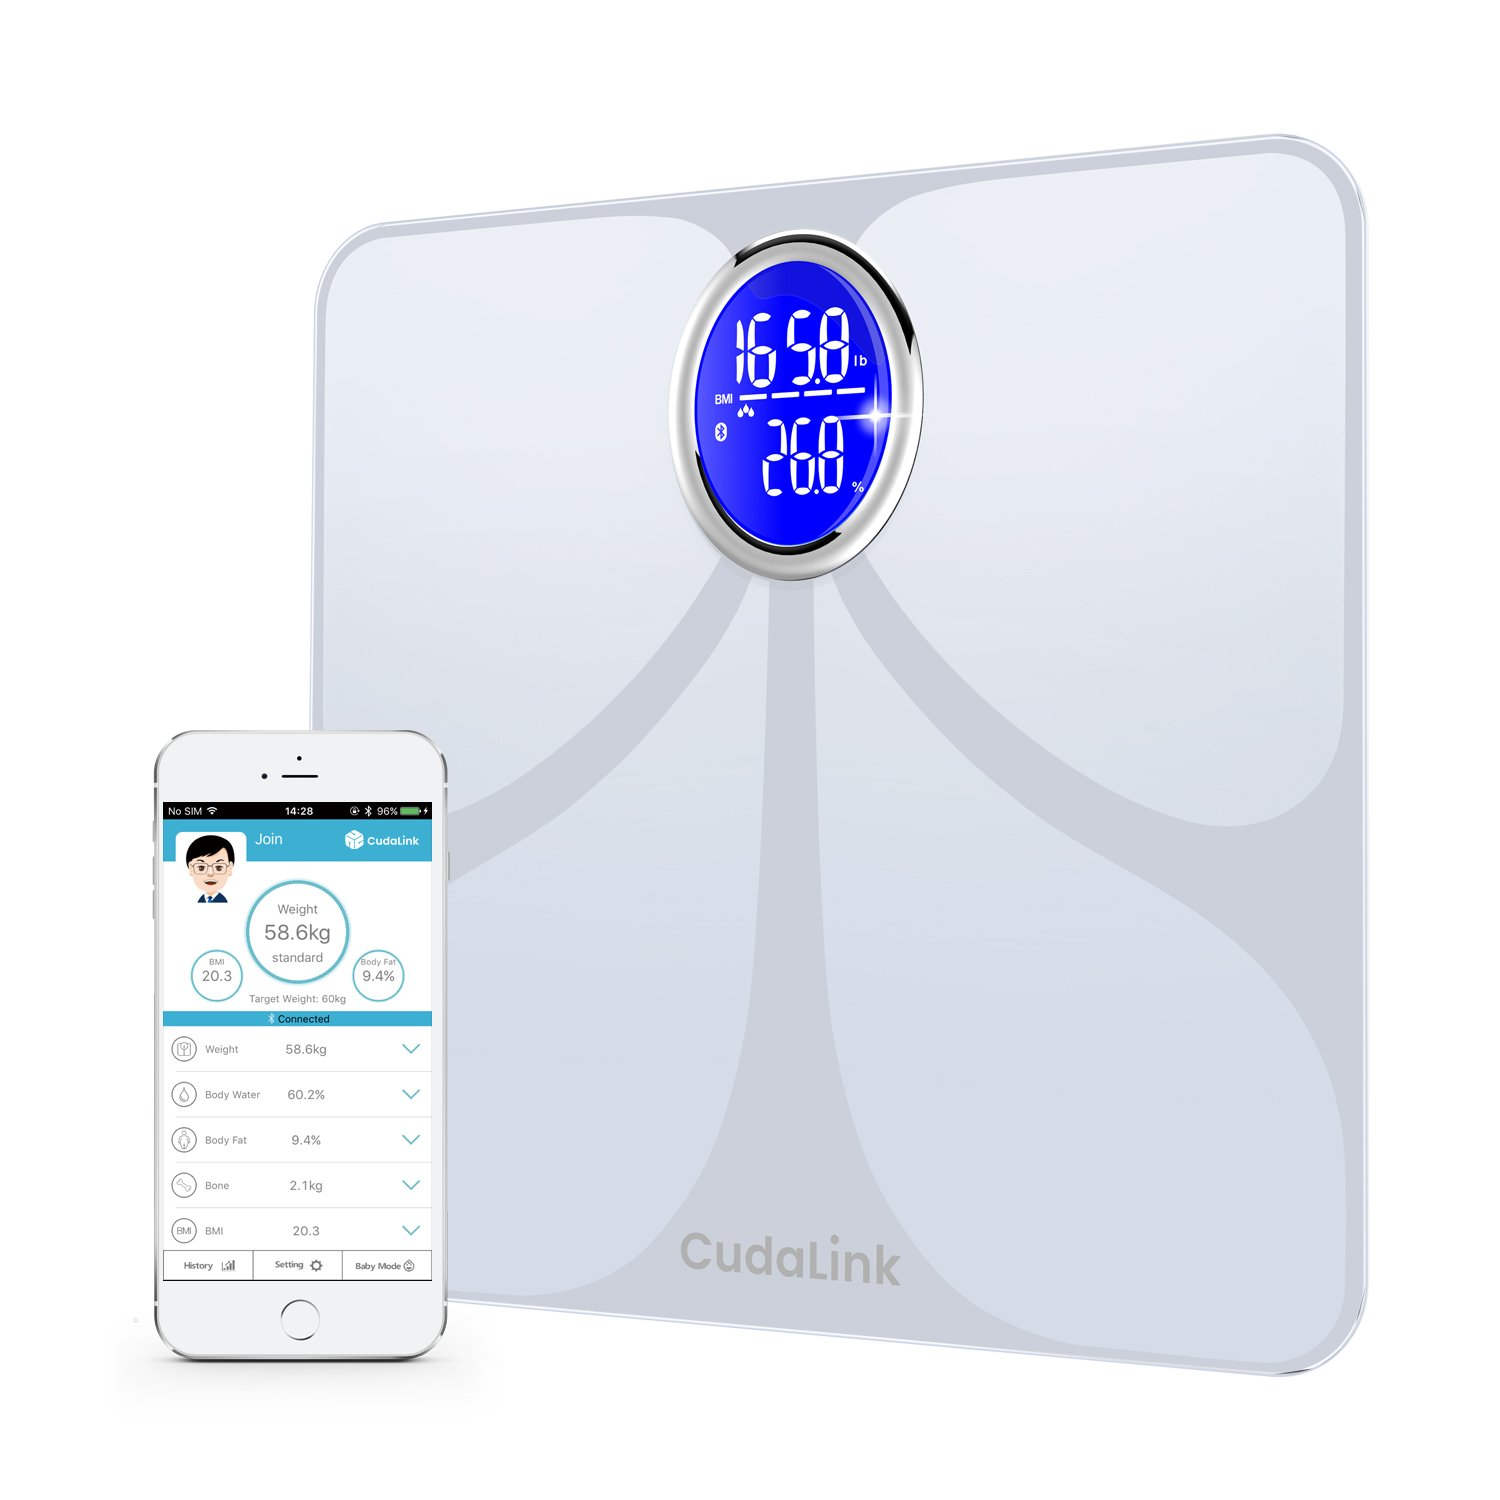 Accurate Bathroom Digital Weight, Body Fat, and Body Mass Scale | Bluetooth Rounded LED Display, Aluminum Electrodes & Tempered Glass Composition Scale | 8 Key Metrics & iOS/Android App (White)